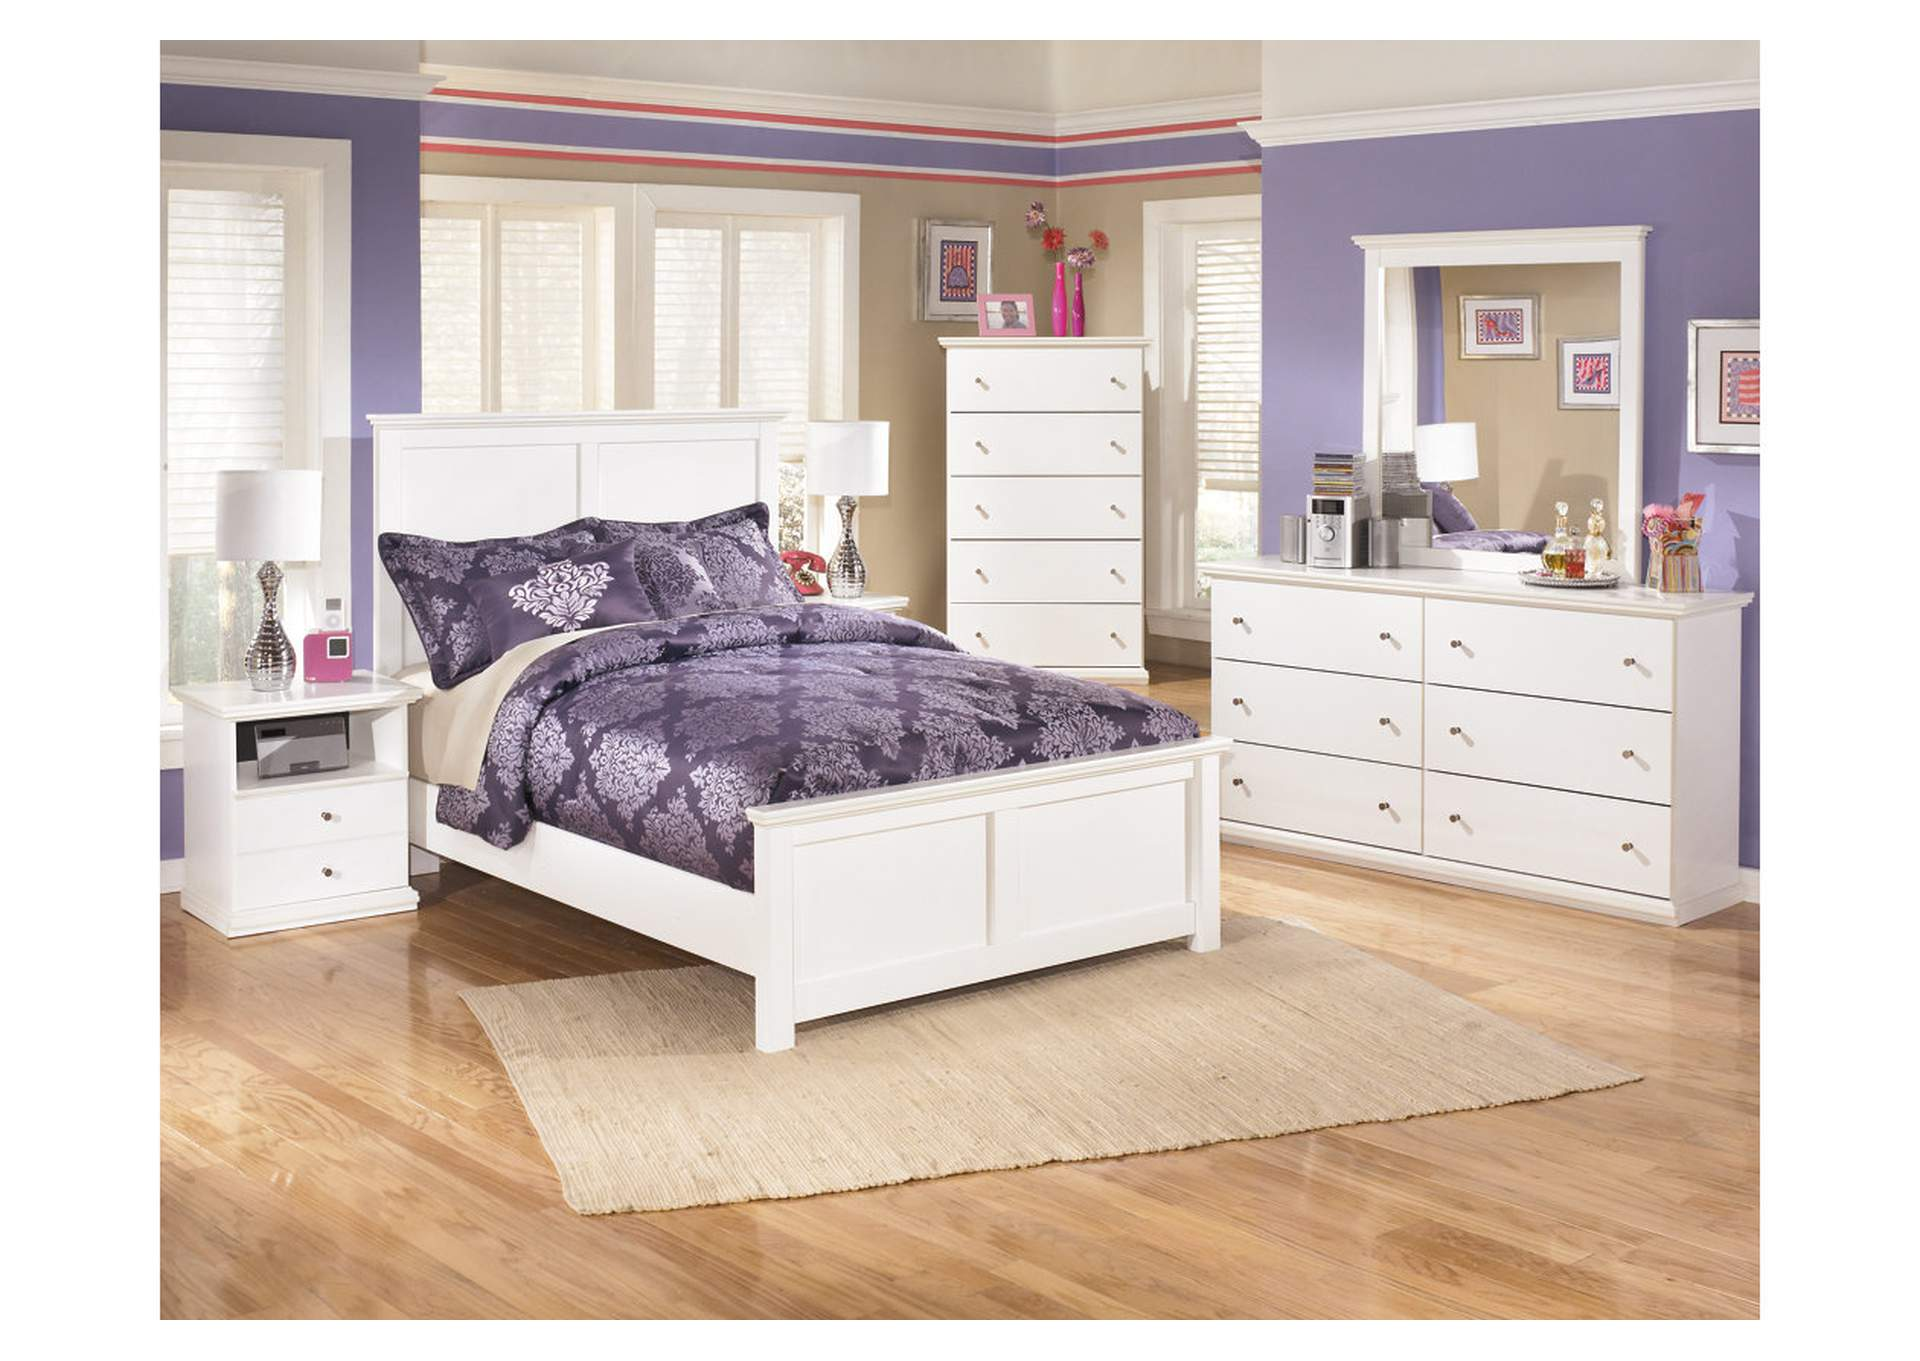 Bostwick Shoals Full Panel Bed, Dresser & Mirror,Signature Design By Ashley